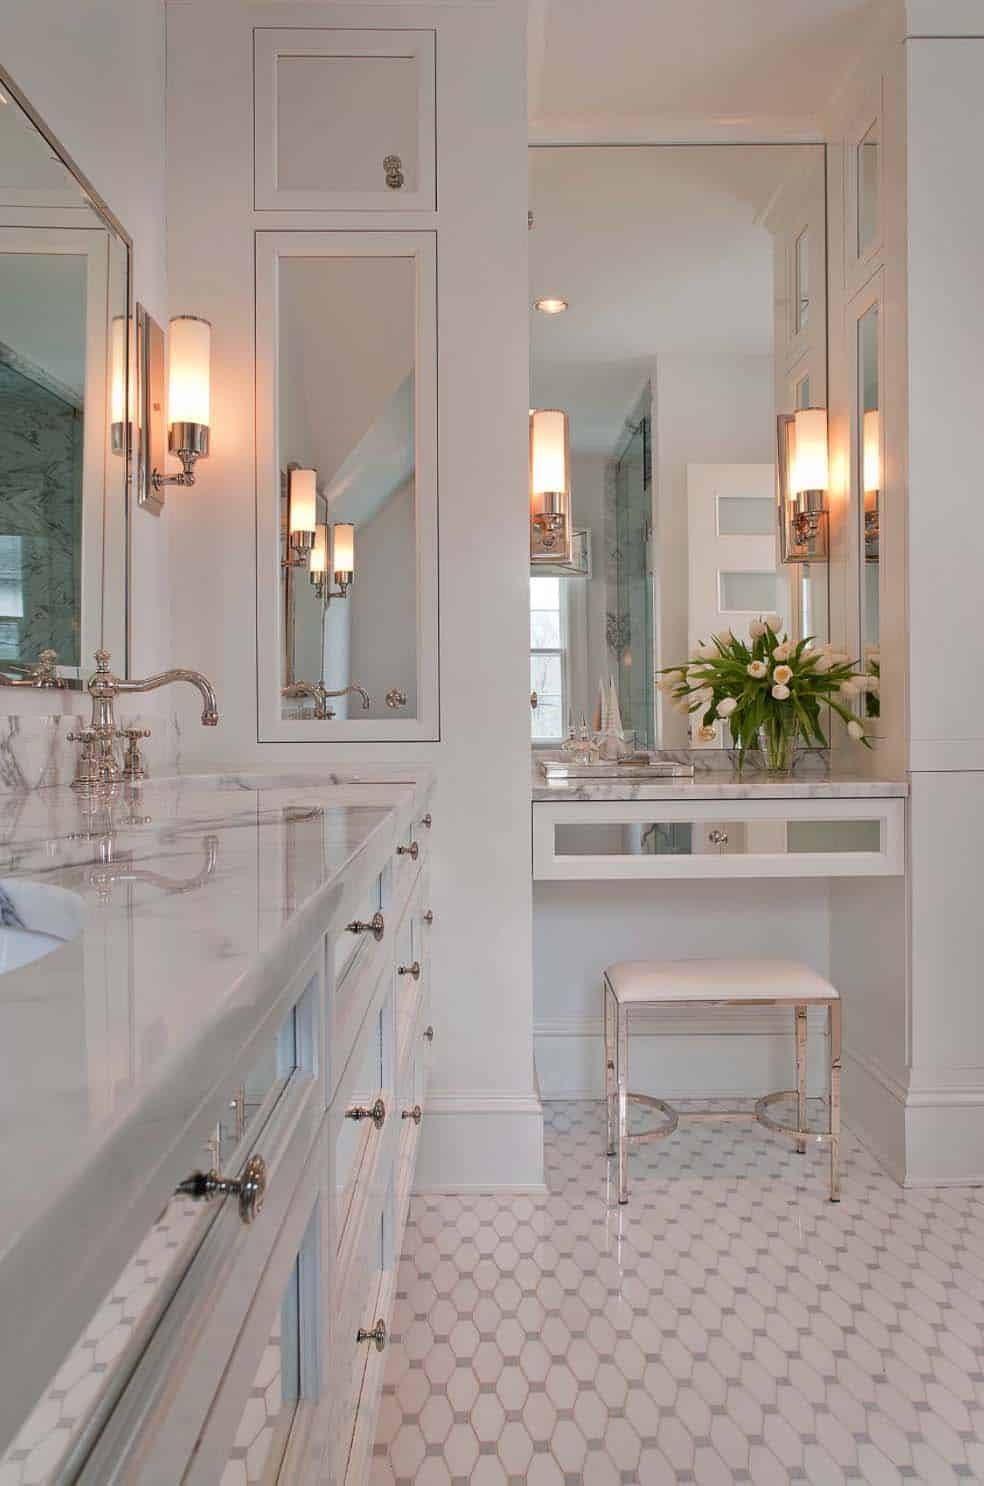 53 most fabulous traditional style bathroom designs ever - White bathroom ideas photo gallery ...